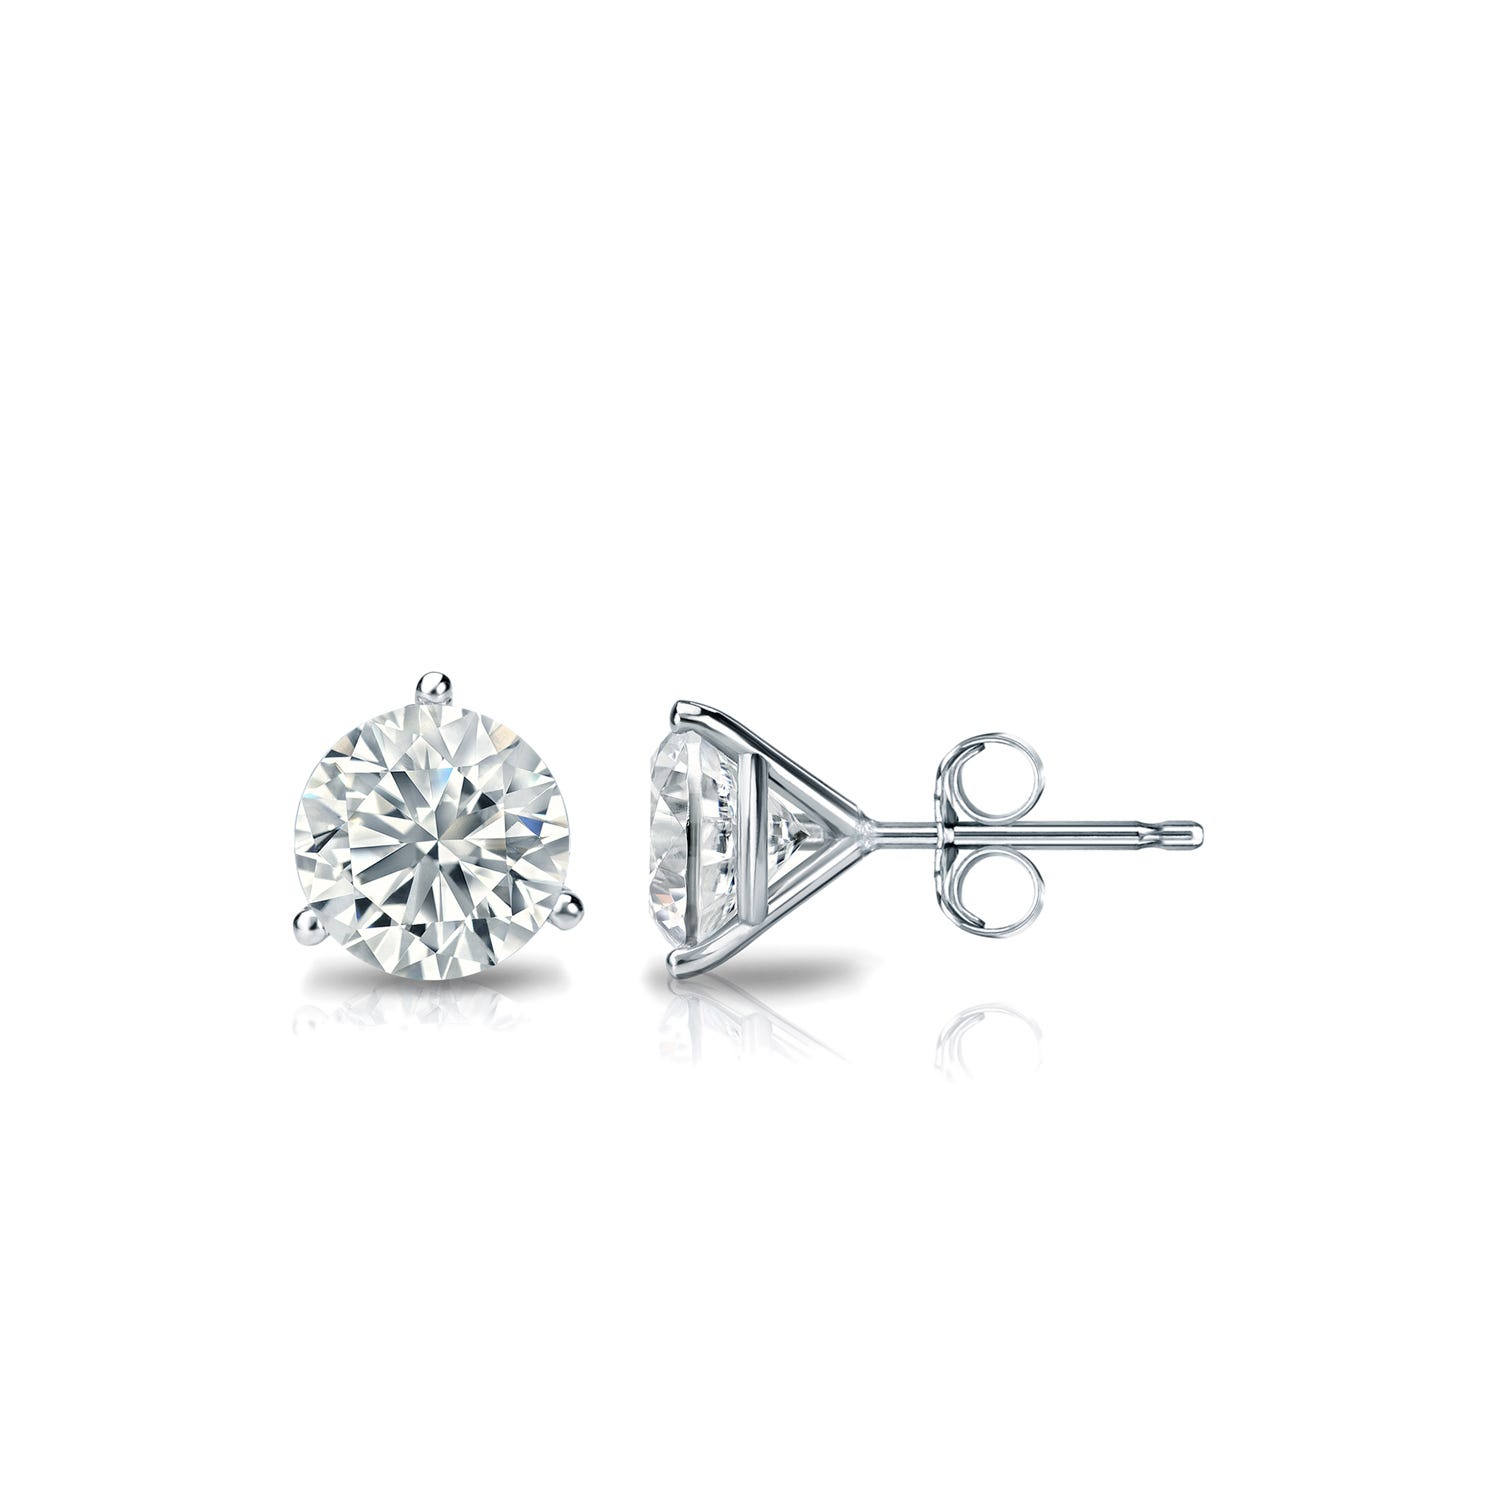 5/8 CTTW Round Diamond Solitaire Stud Earrings IJ I2 in Platinum 3-Prong Setting